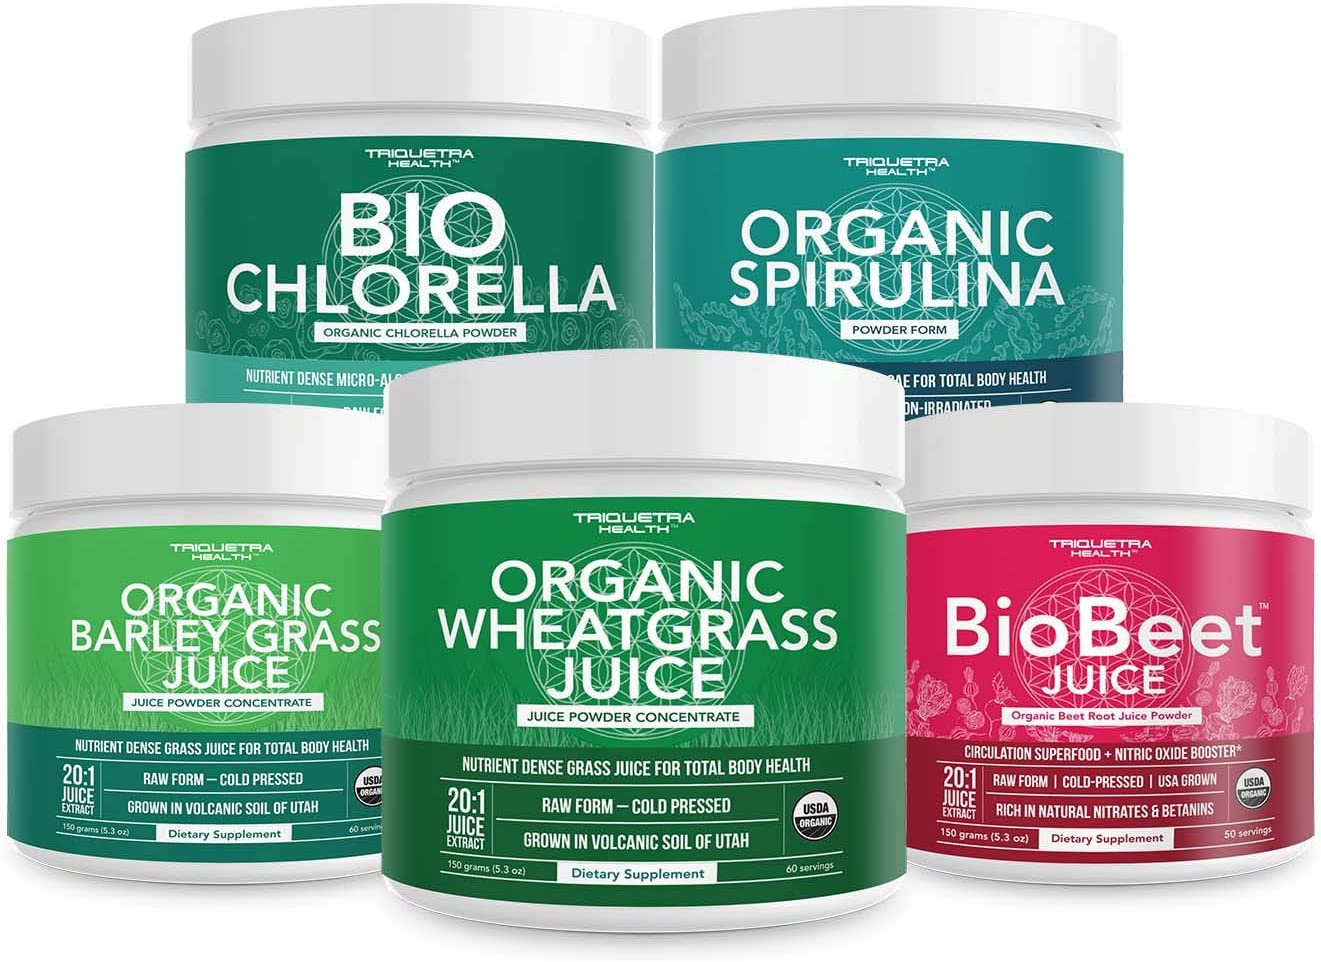 Organic Beetroot Juice Powder, Organic Spirulina Powder, Organic Chlorella Powder, Organic Wheatgrass Juice Powder, Organic Barley Grass Juice Powder